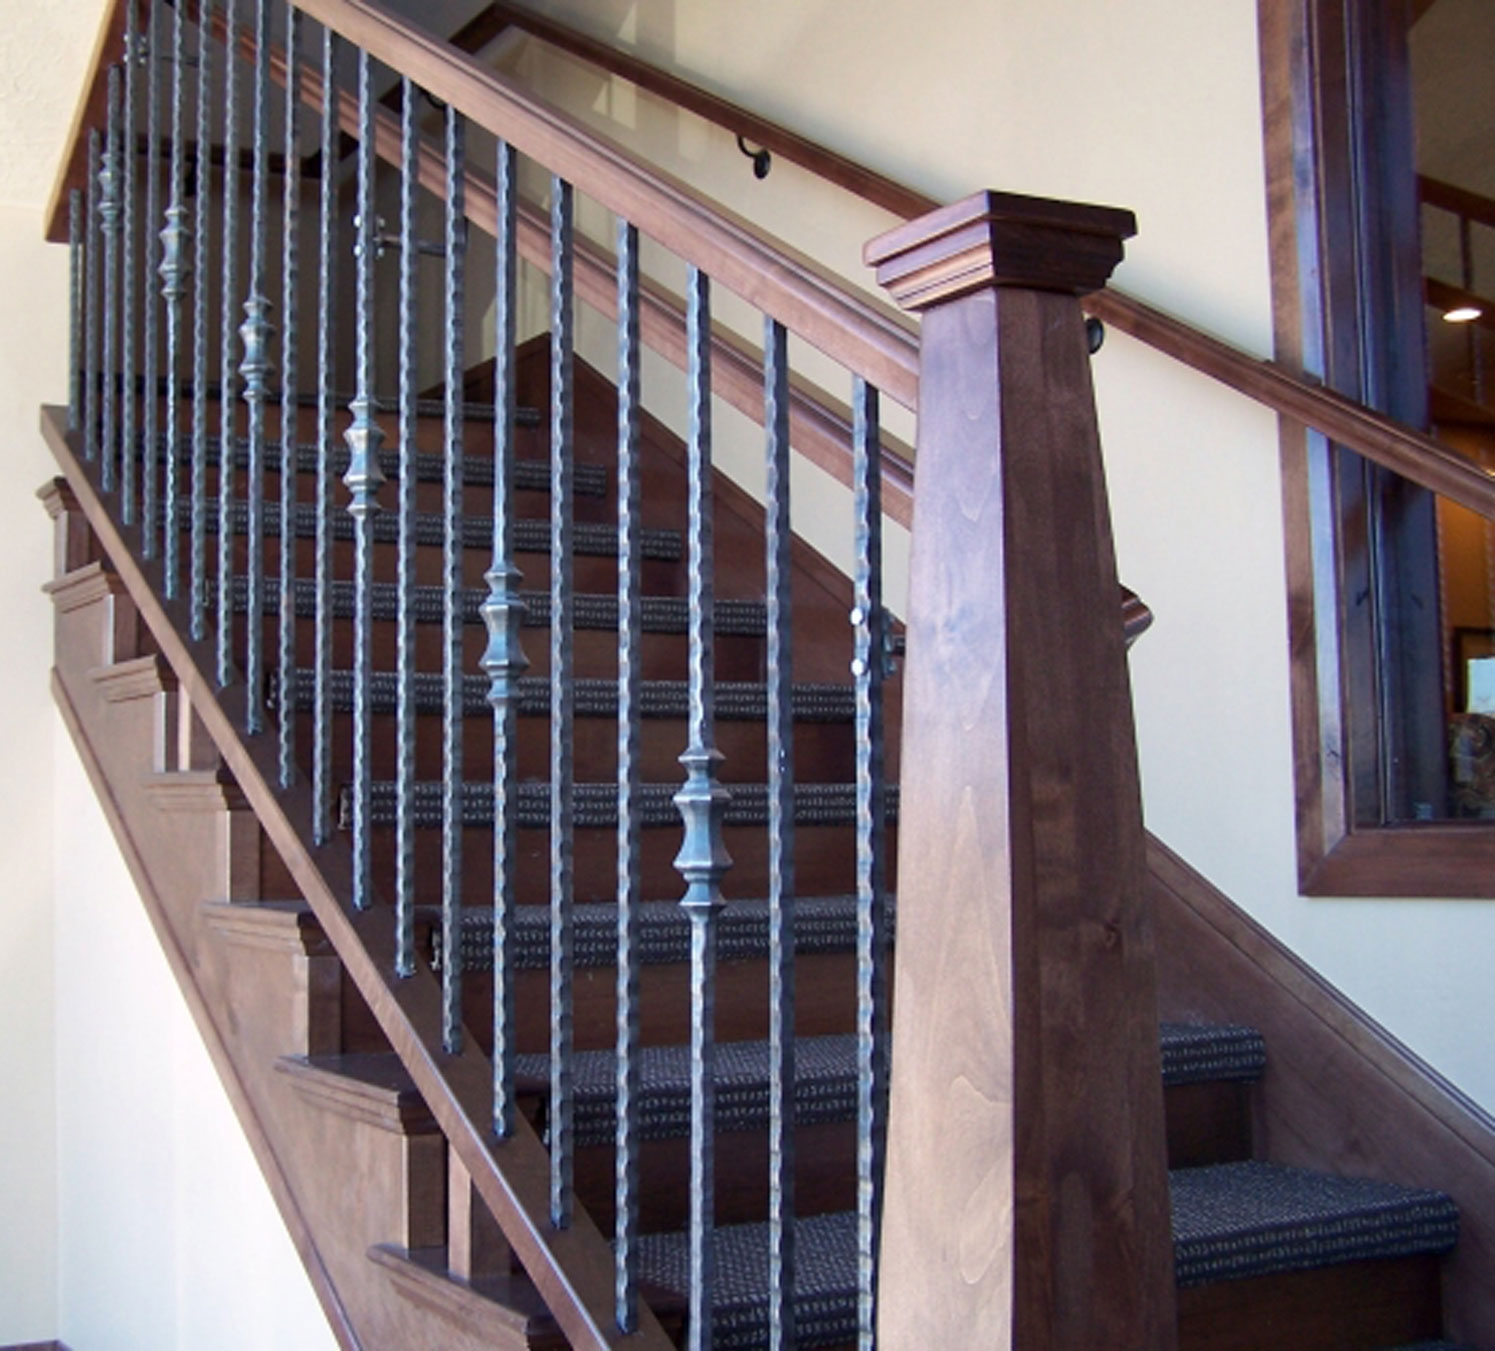 Titan Architectural Products Of Utah   Iron Handrails For Stairs   Cheap   Staircase   Spanish Style   Wood   Craftsman Style